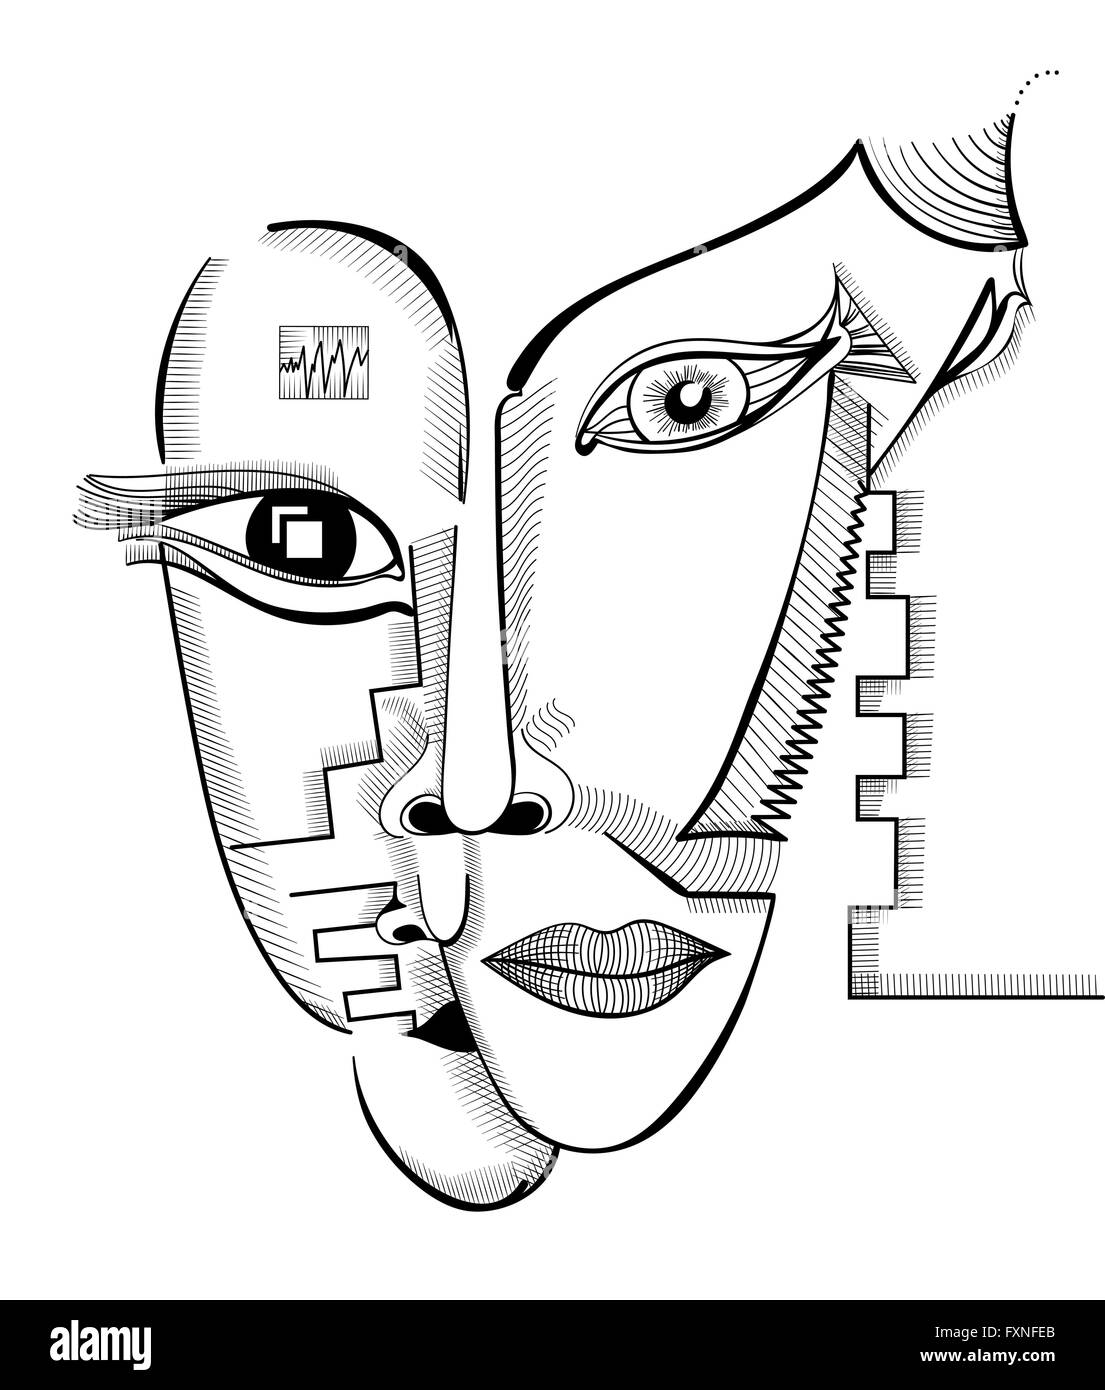 Hand Drawing Faces In Cubism Style Abstract Surreal Vector